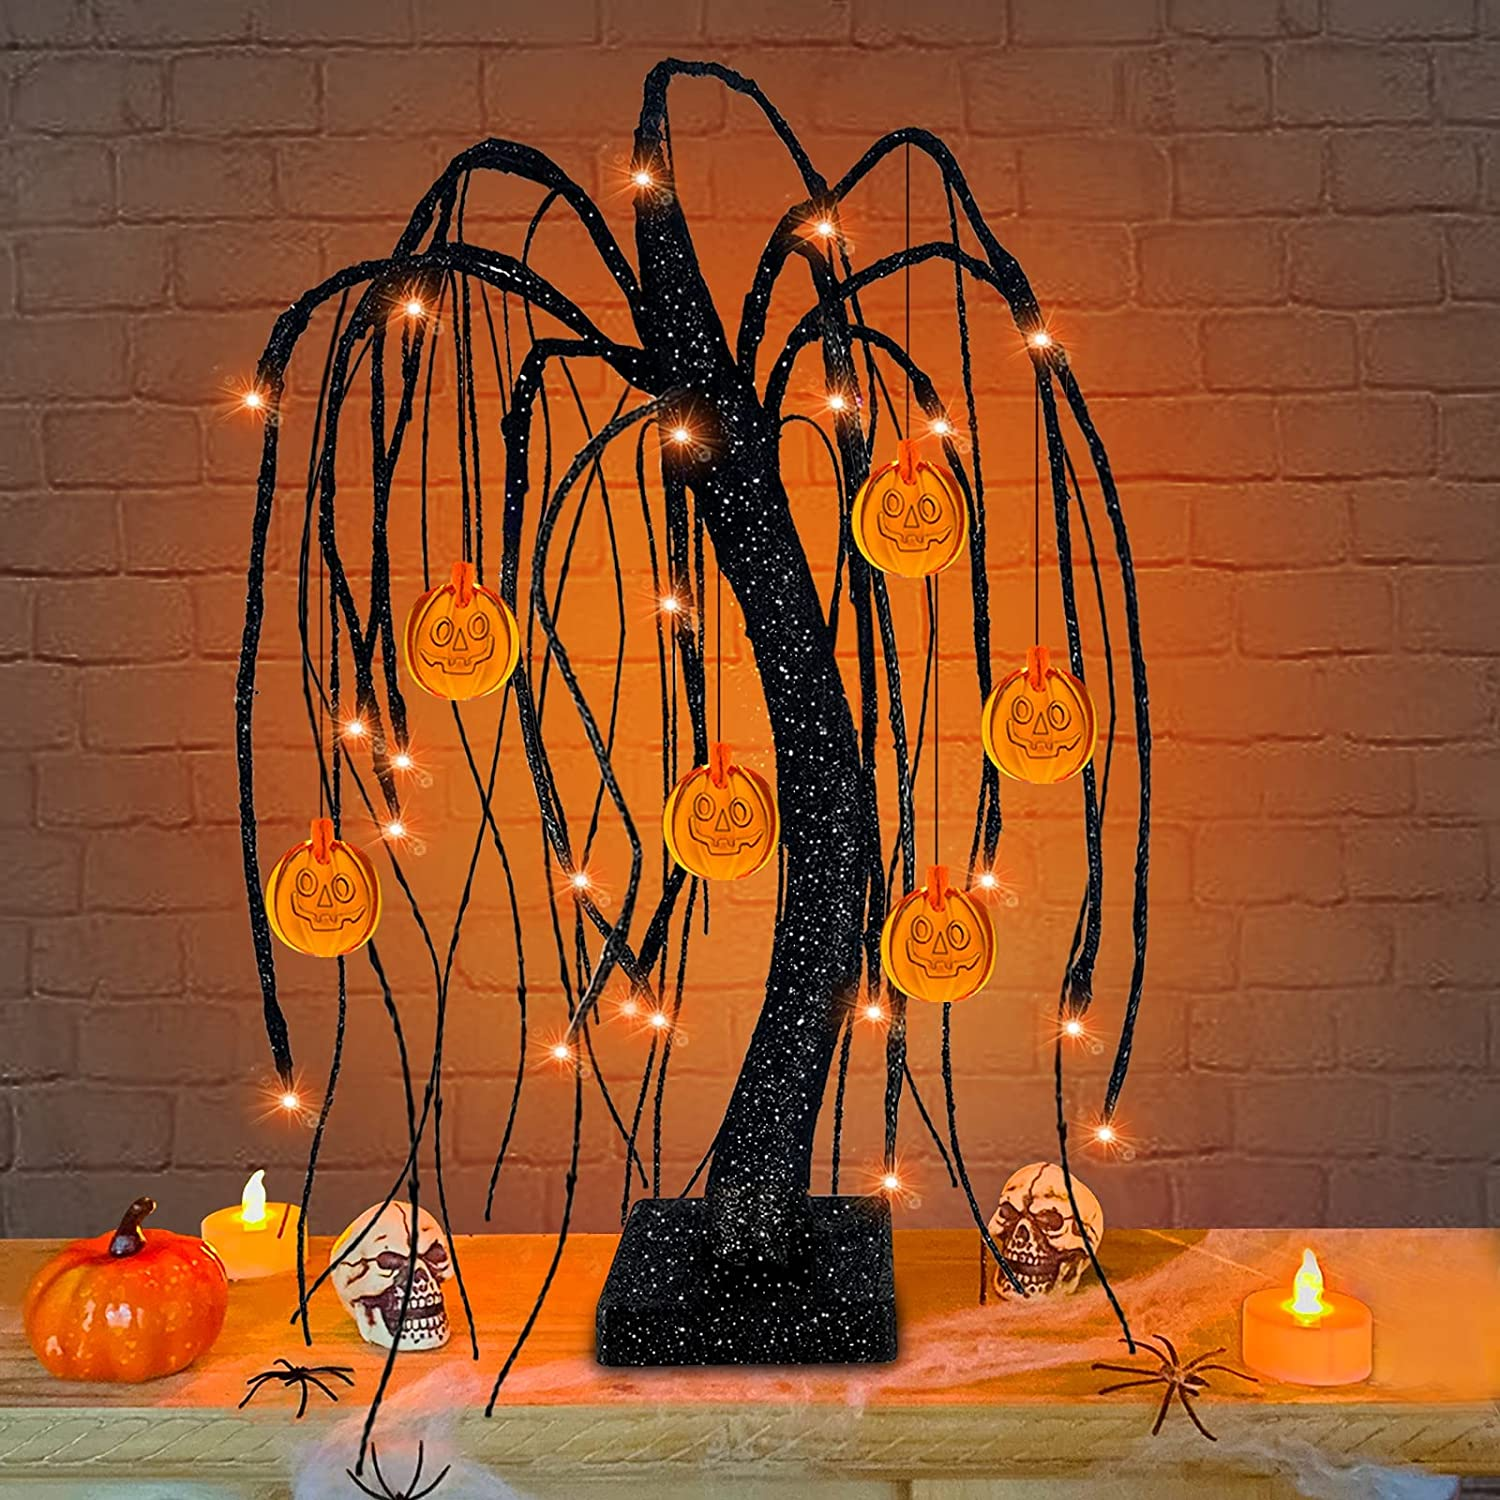 18'' Artificial Willow Tree Halloween Decor with Timer 24 Orange Lights and 6 Pumpkin Jack-o'-Lantern Halloween Lights Battery Powered Glitter Black Spooky Tree for Halloween Decorations Indoor Home